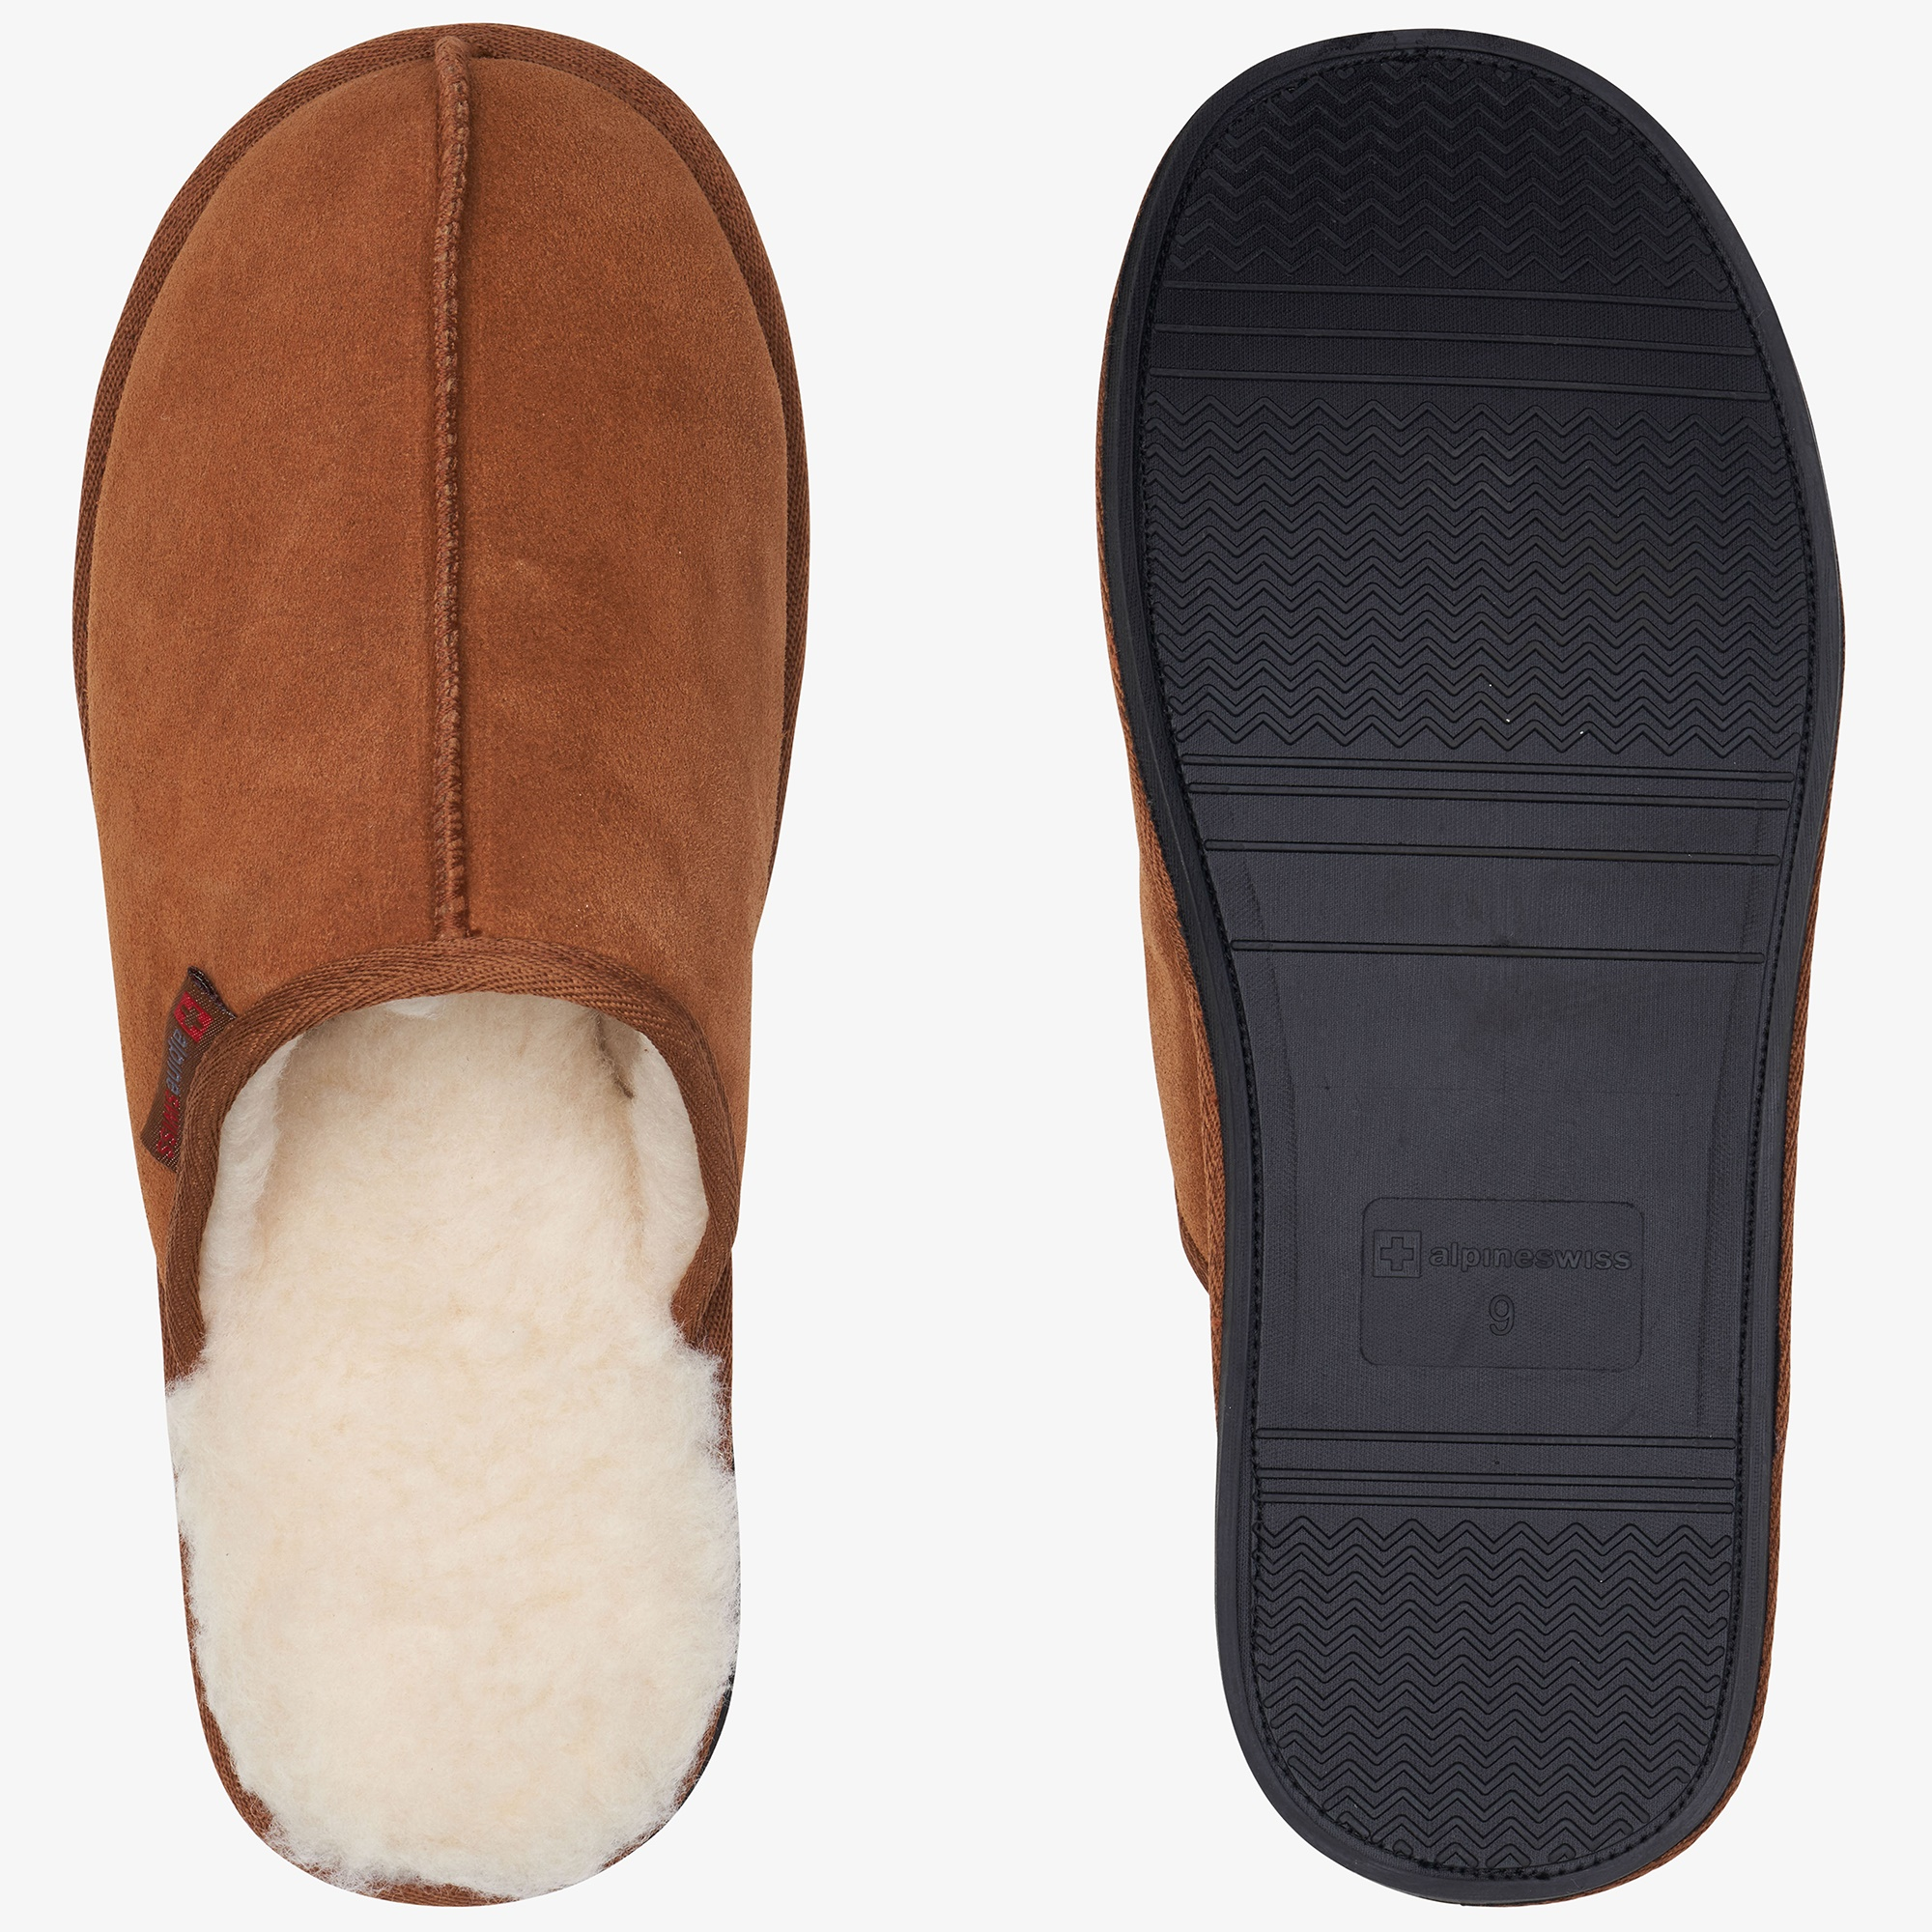 Alpine-Swiss-Mens-Suede-Memory-Foam-Scuff-Slippers-Comfort-Slip-On-House-Shoes thumbnail 21